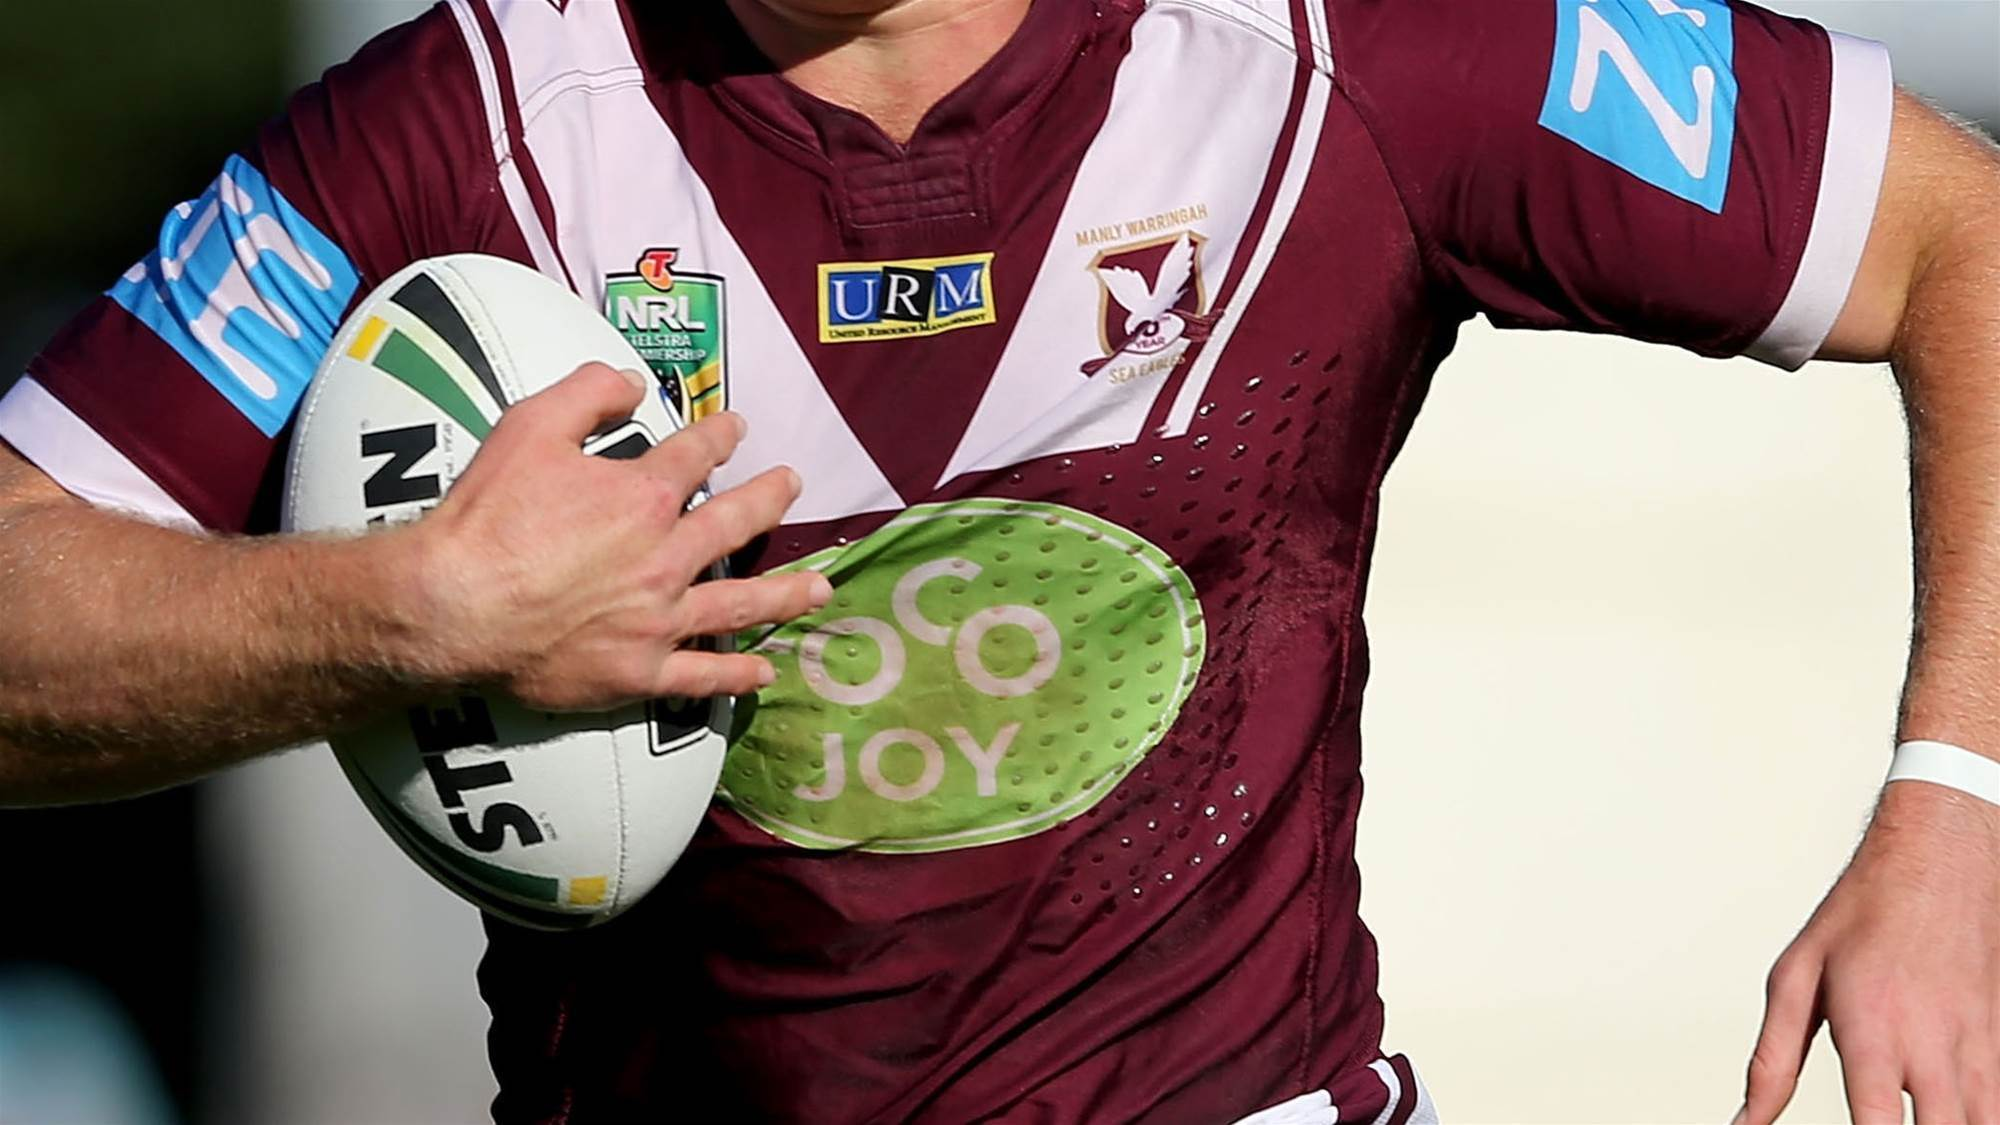 Former Manly hooker signs with Qld club